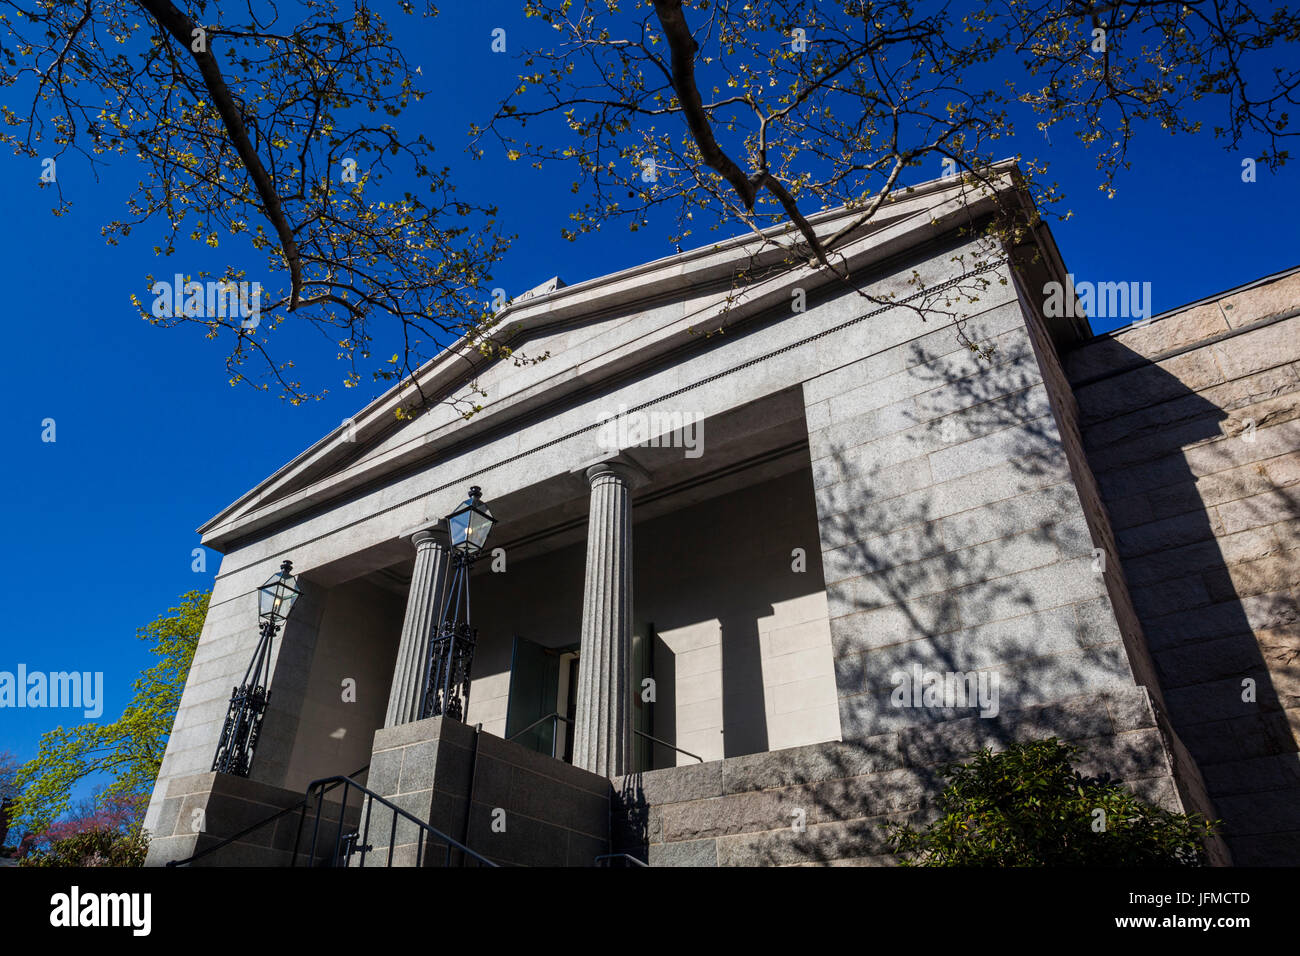 USA, Rhode Island, Providence, Providence Athenaeum, 1836, historic private library, exterior - Stock Image